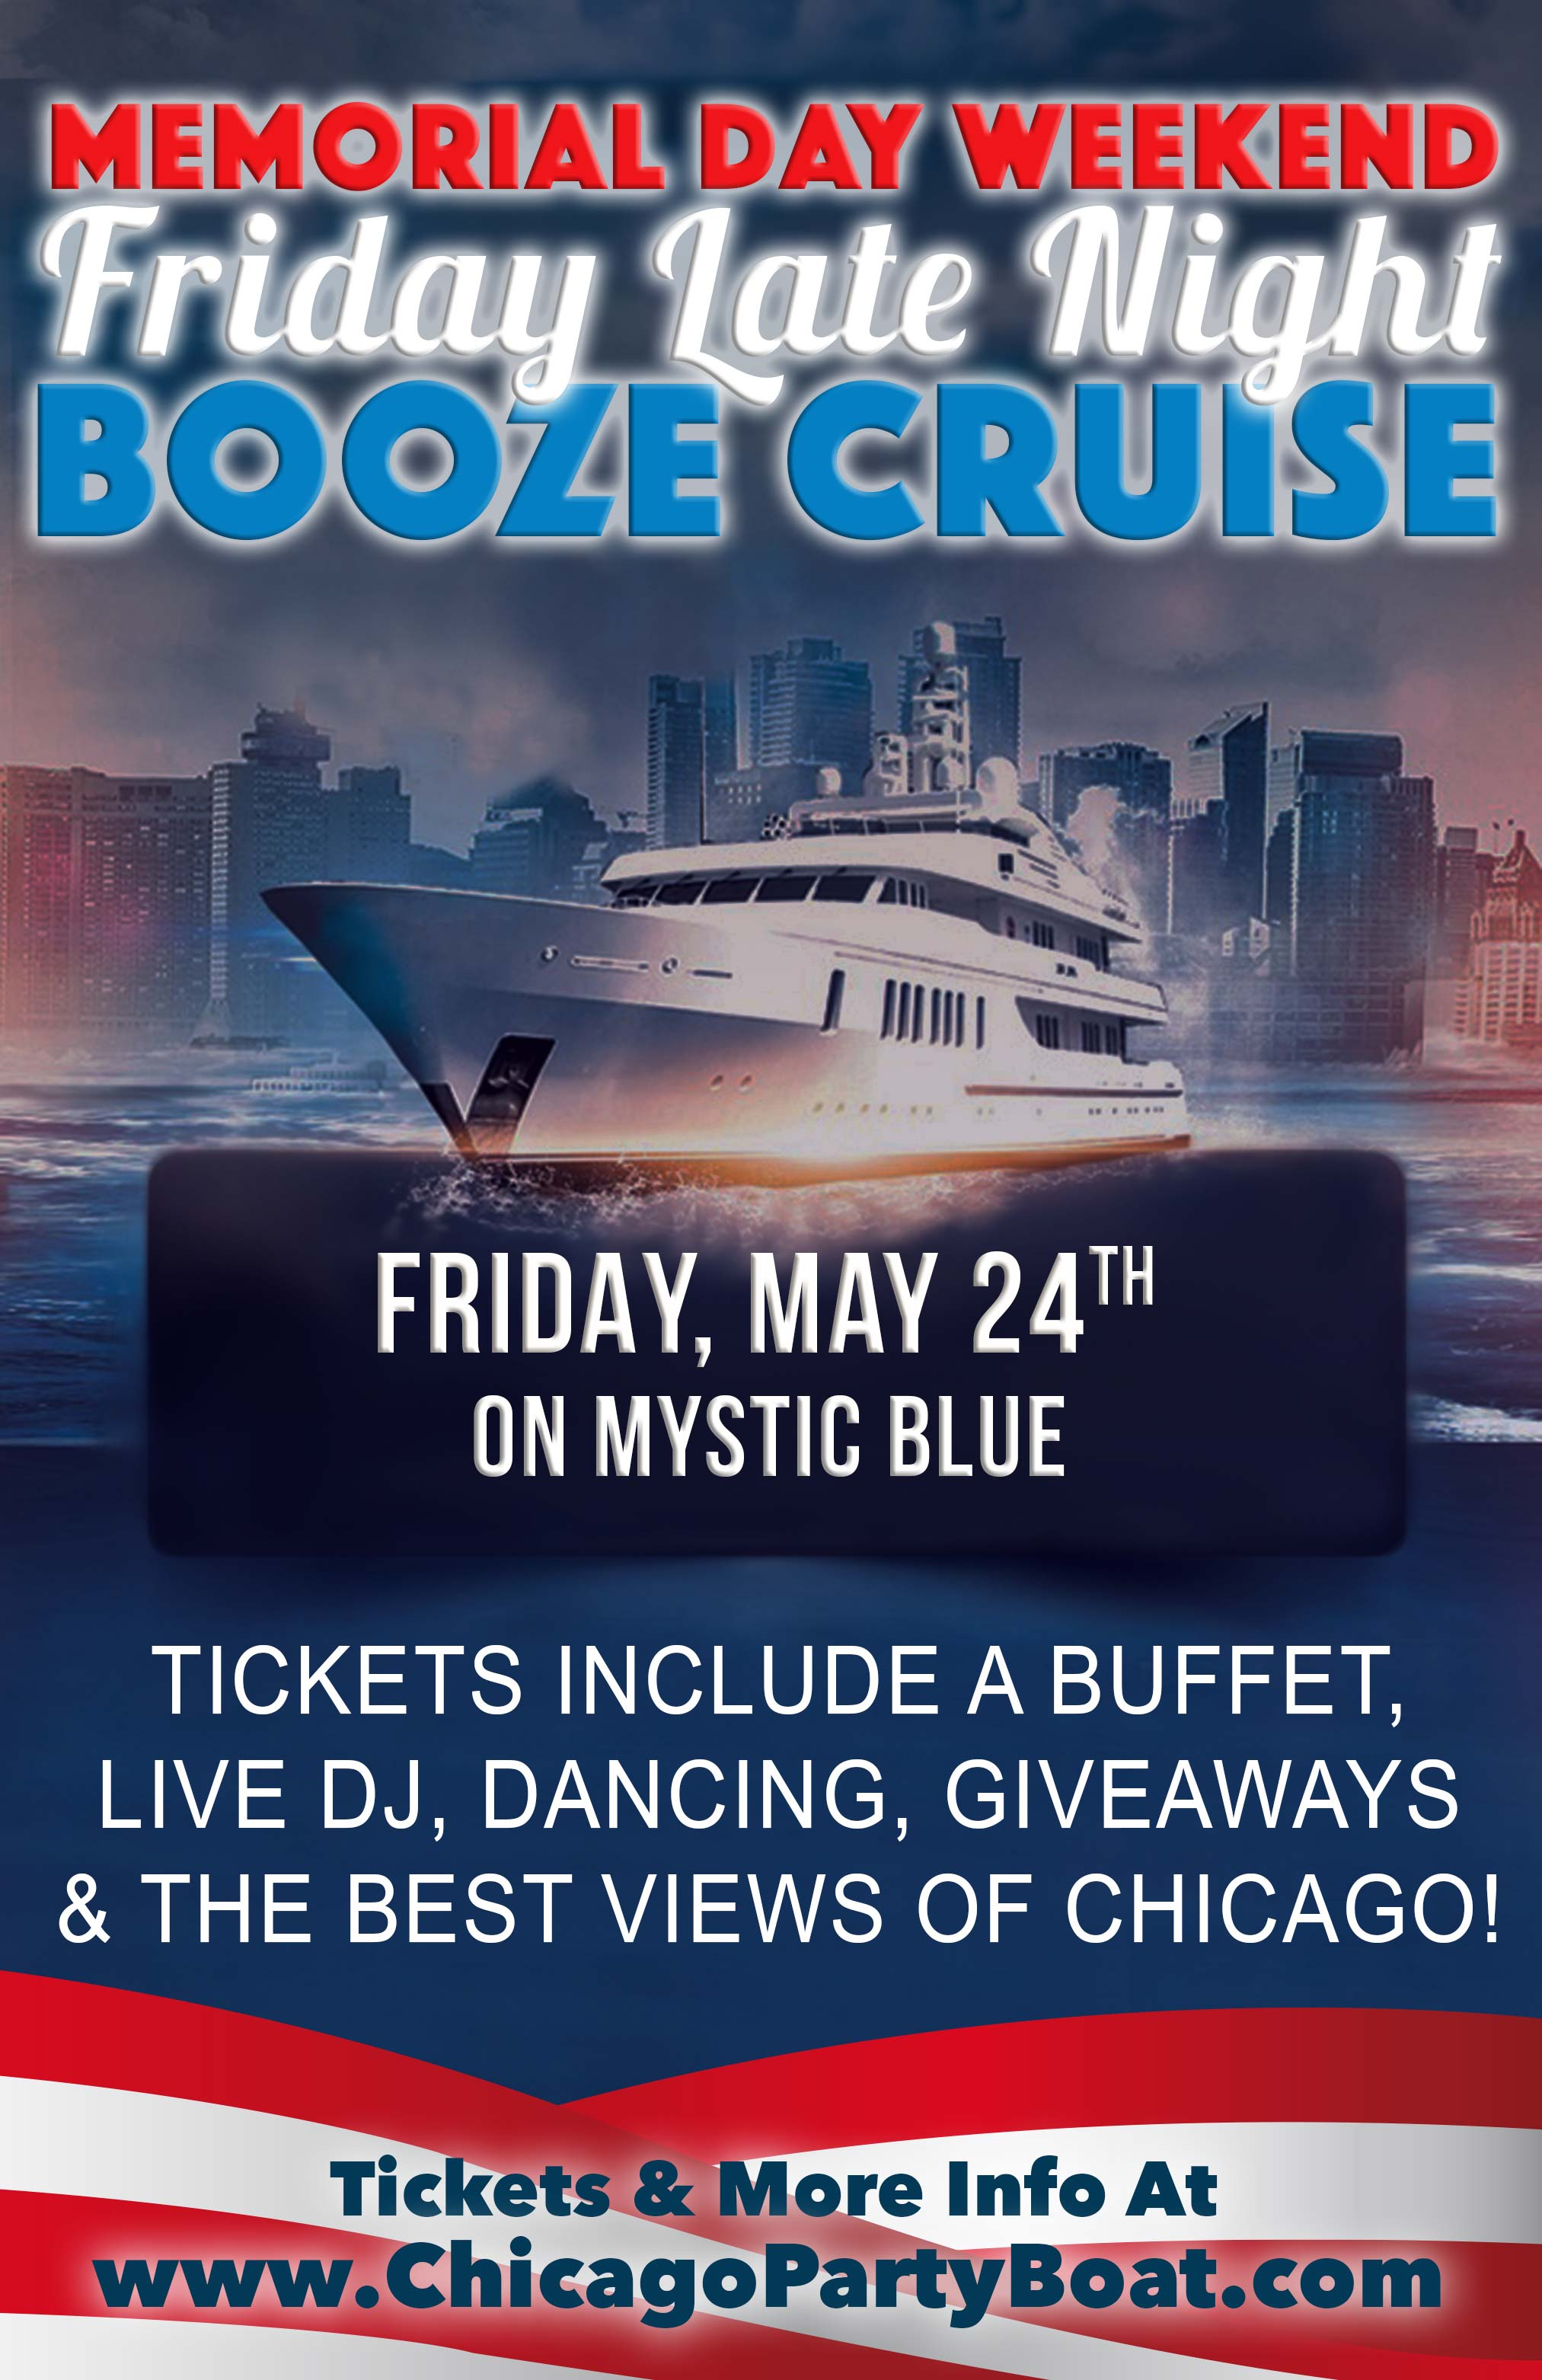 Memorial Day Weekend Friday Late Night Booze Cruise - Tickets include a Buffet, Live DJ, Dancing, Giveaways, and the best views of Chicago!